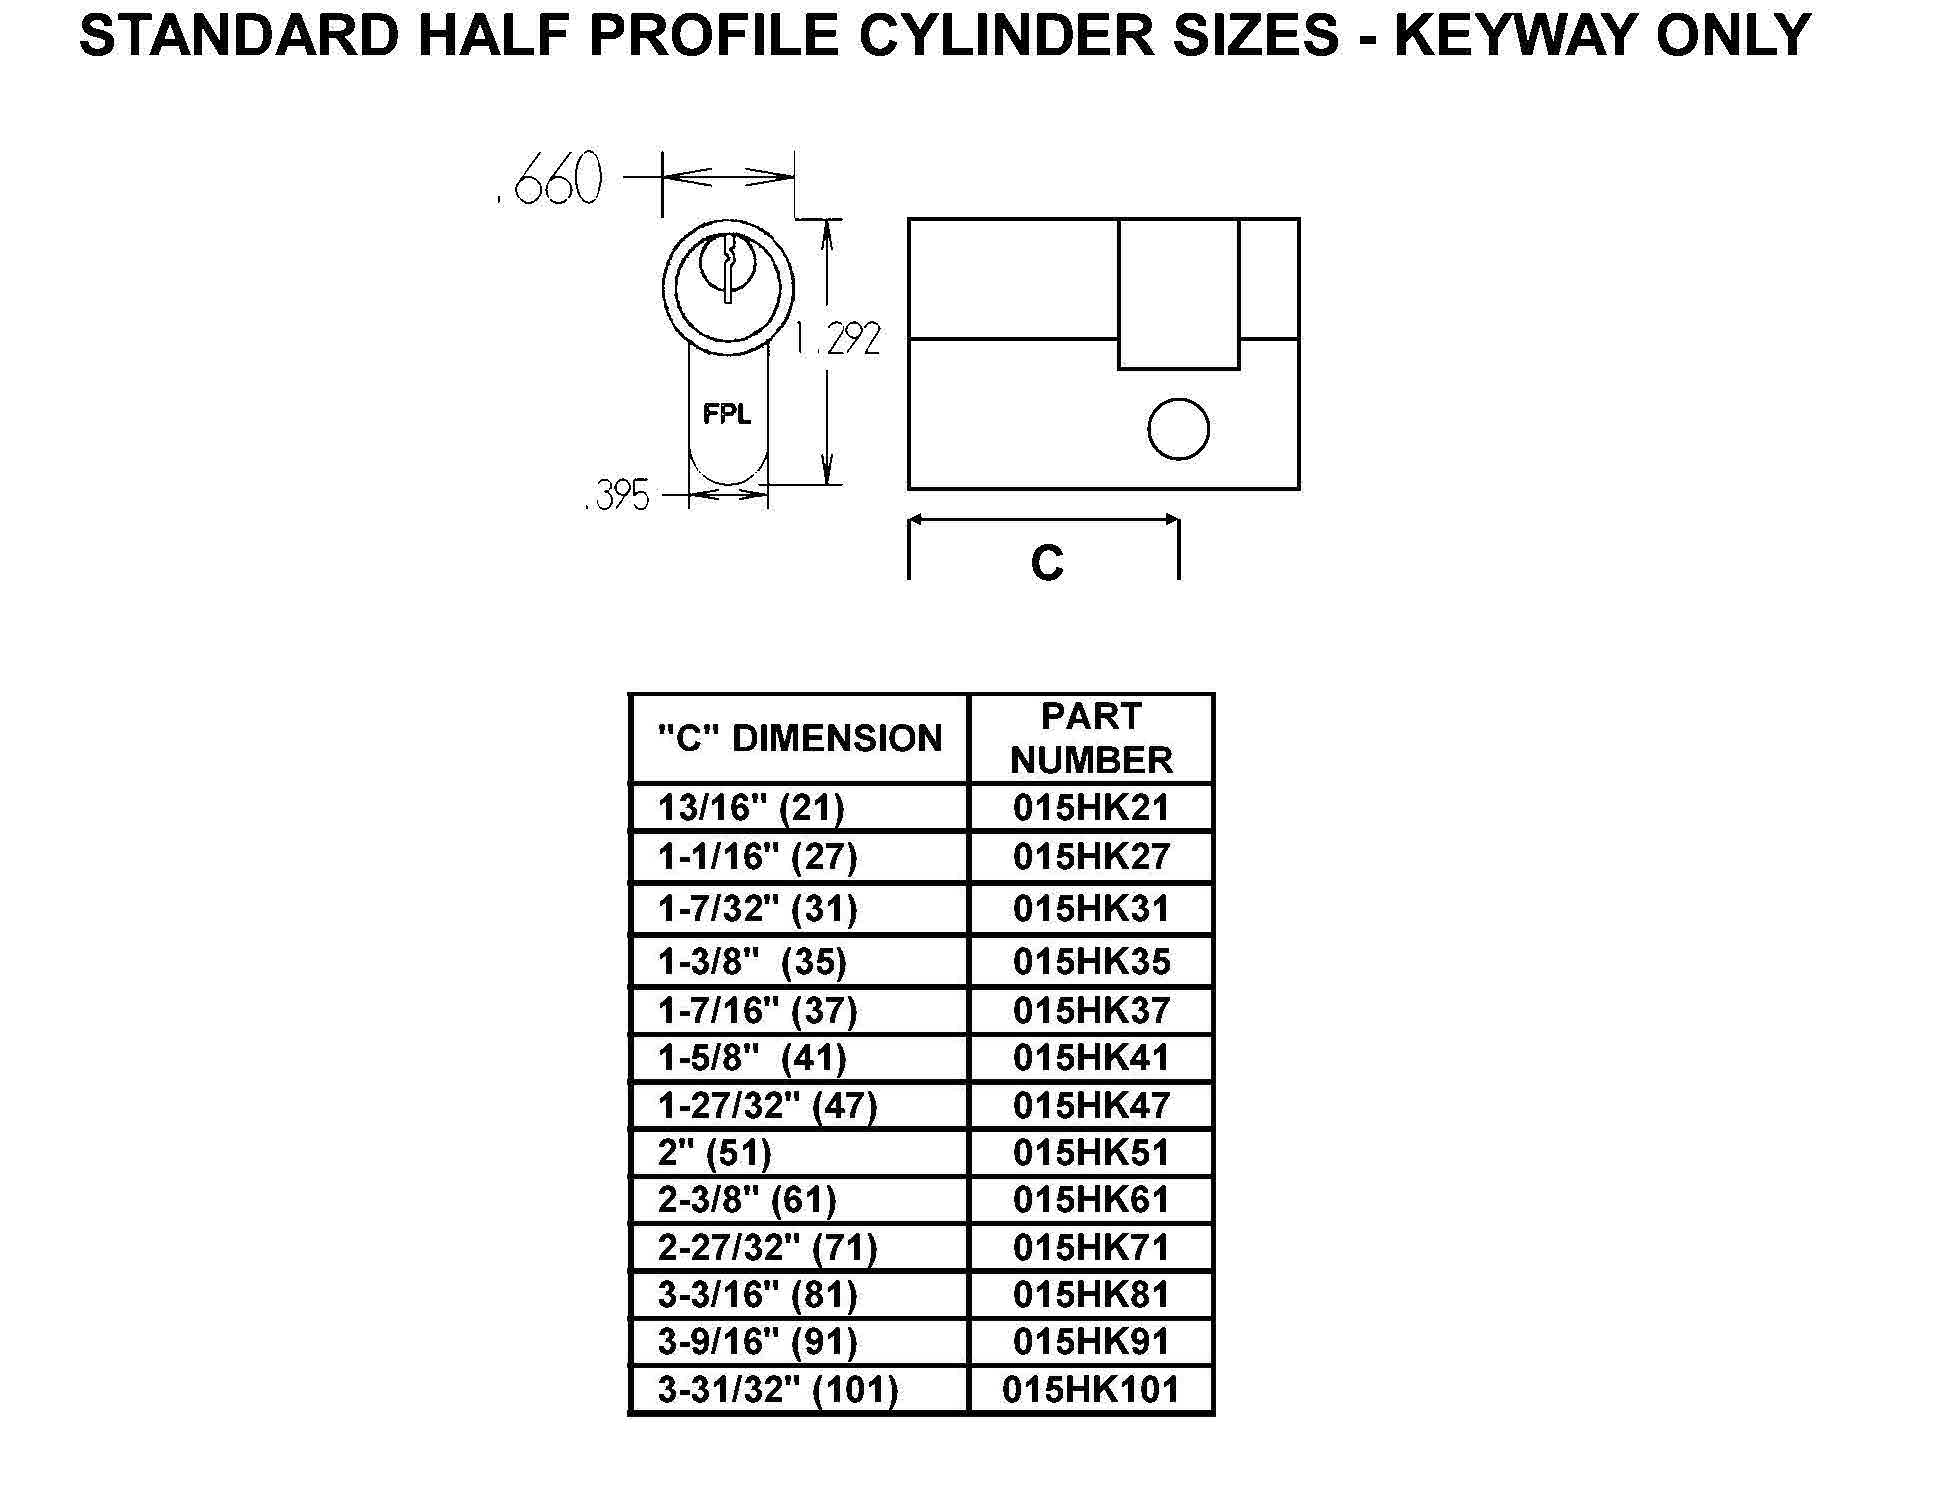 European Profile Cylinders